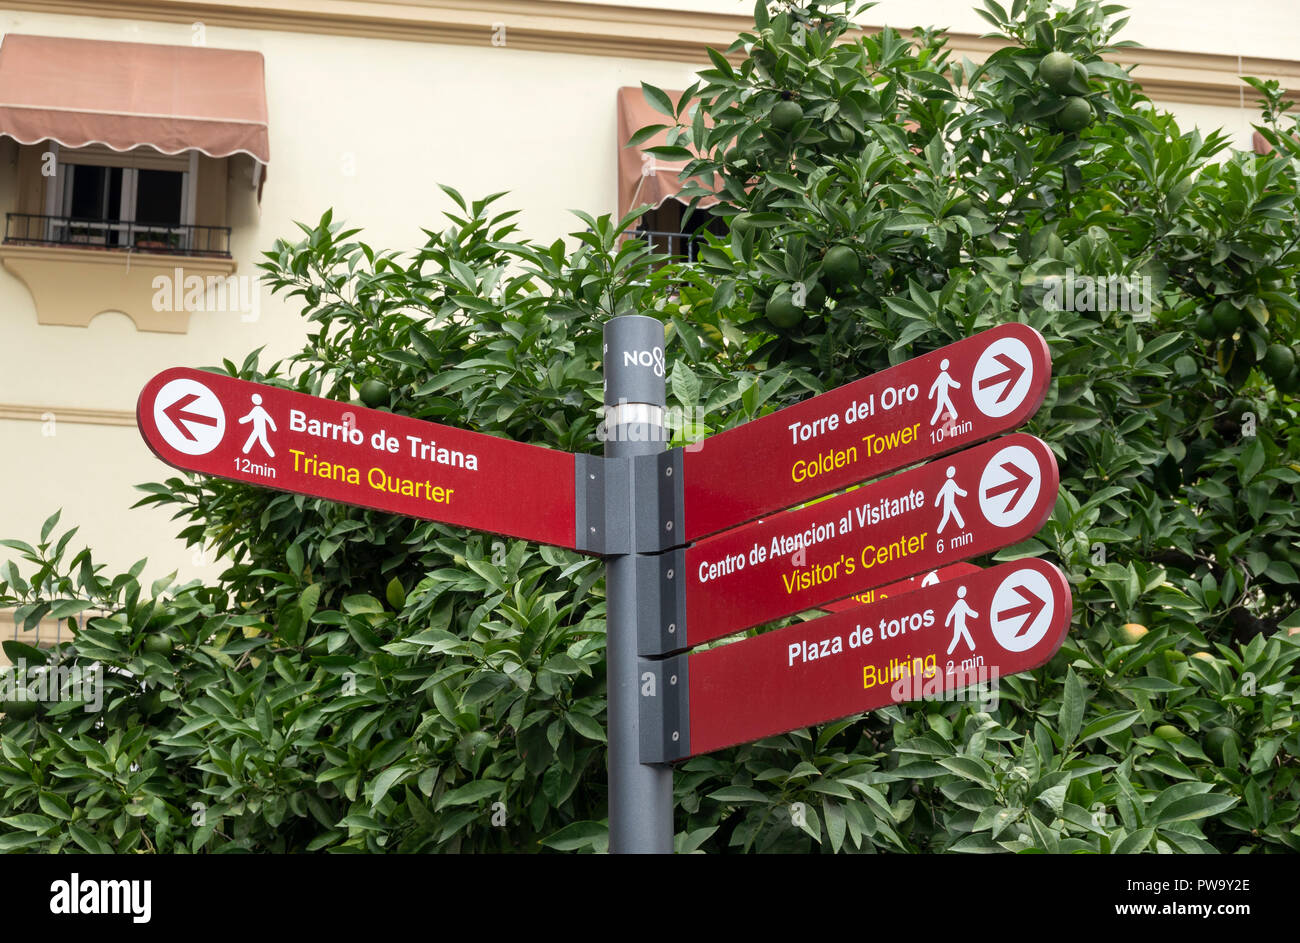 Directional walking signs with minutes on a street in Seville, Spain - Stock Image